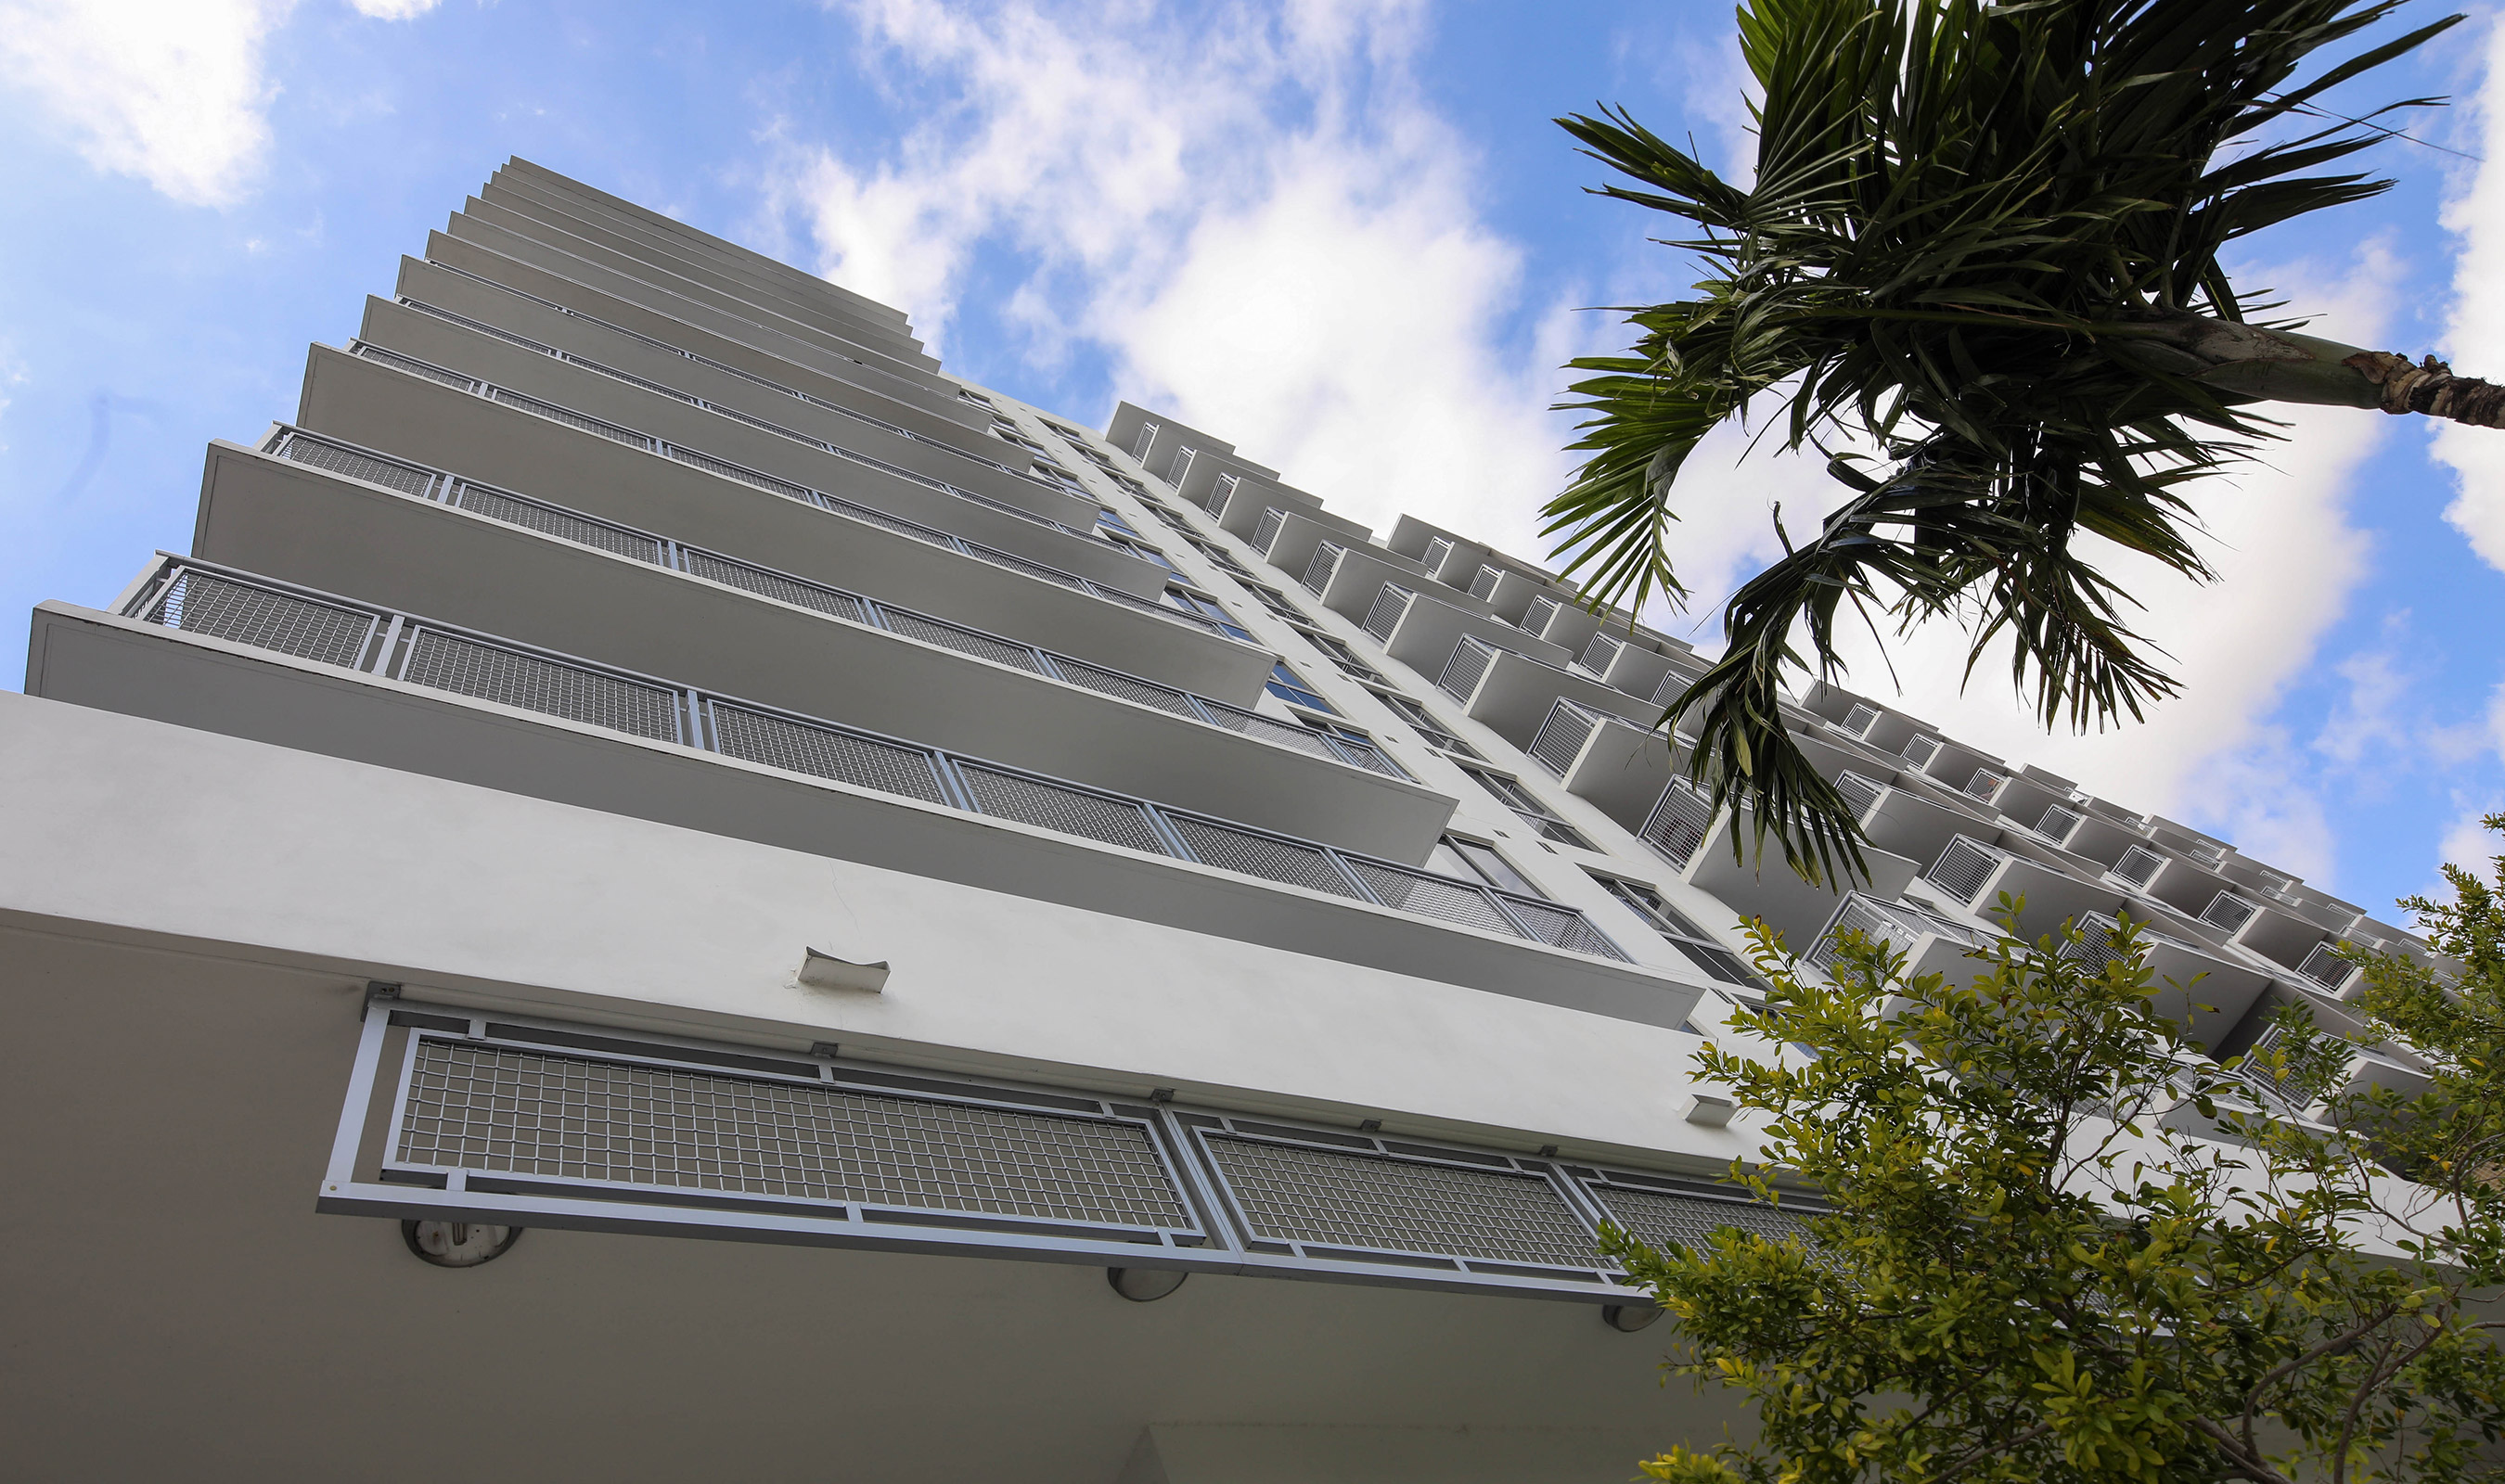 All exterior balcony railing at the Grove Station Tower in Miami , Florida uses Banker Wire's L-64 woven wire mesh in powder coated aluminum.